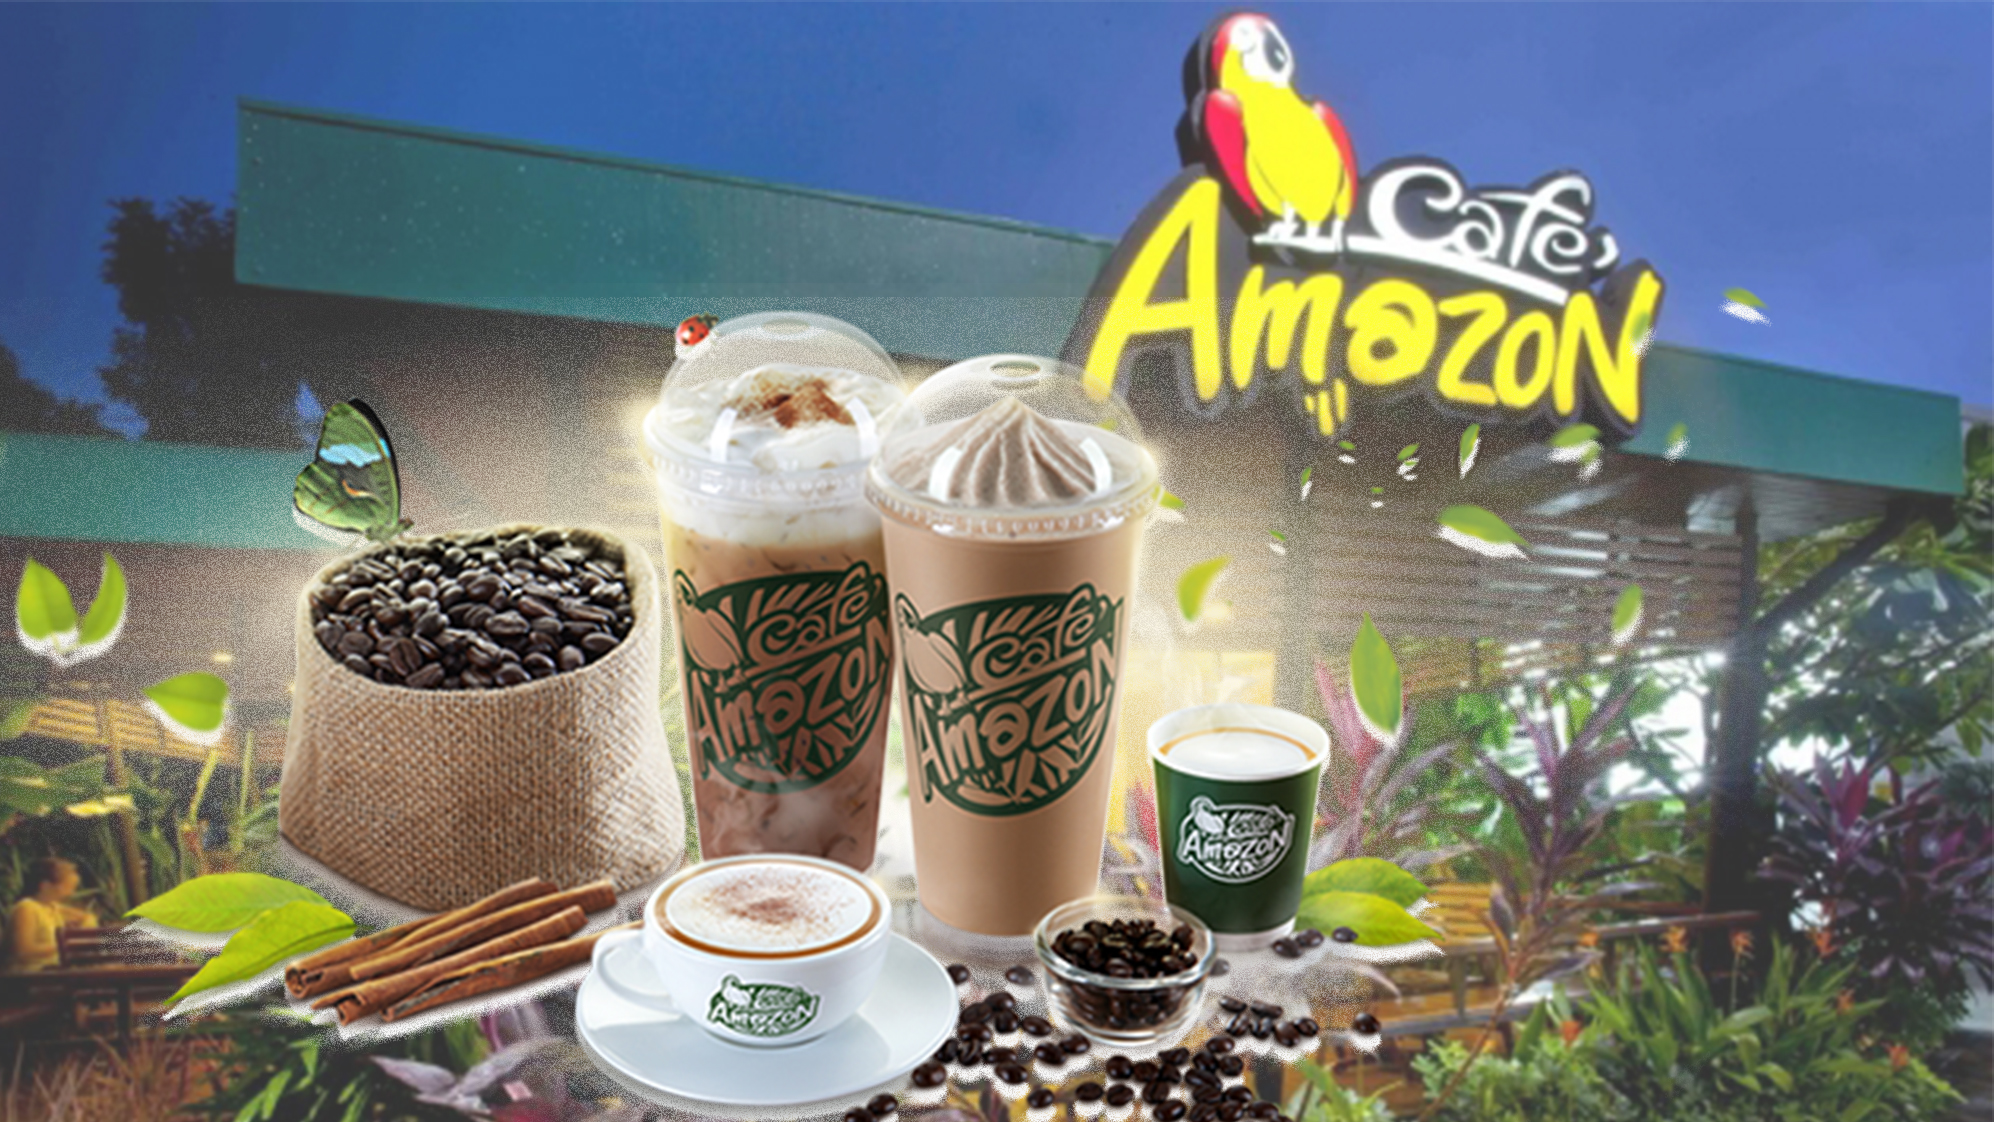 Cafe Amazon business